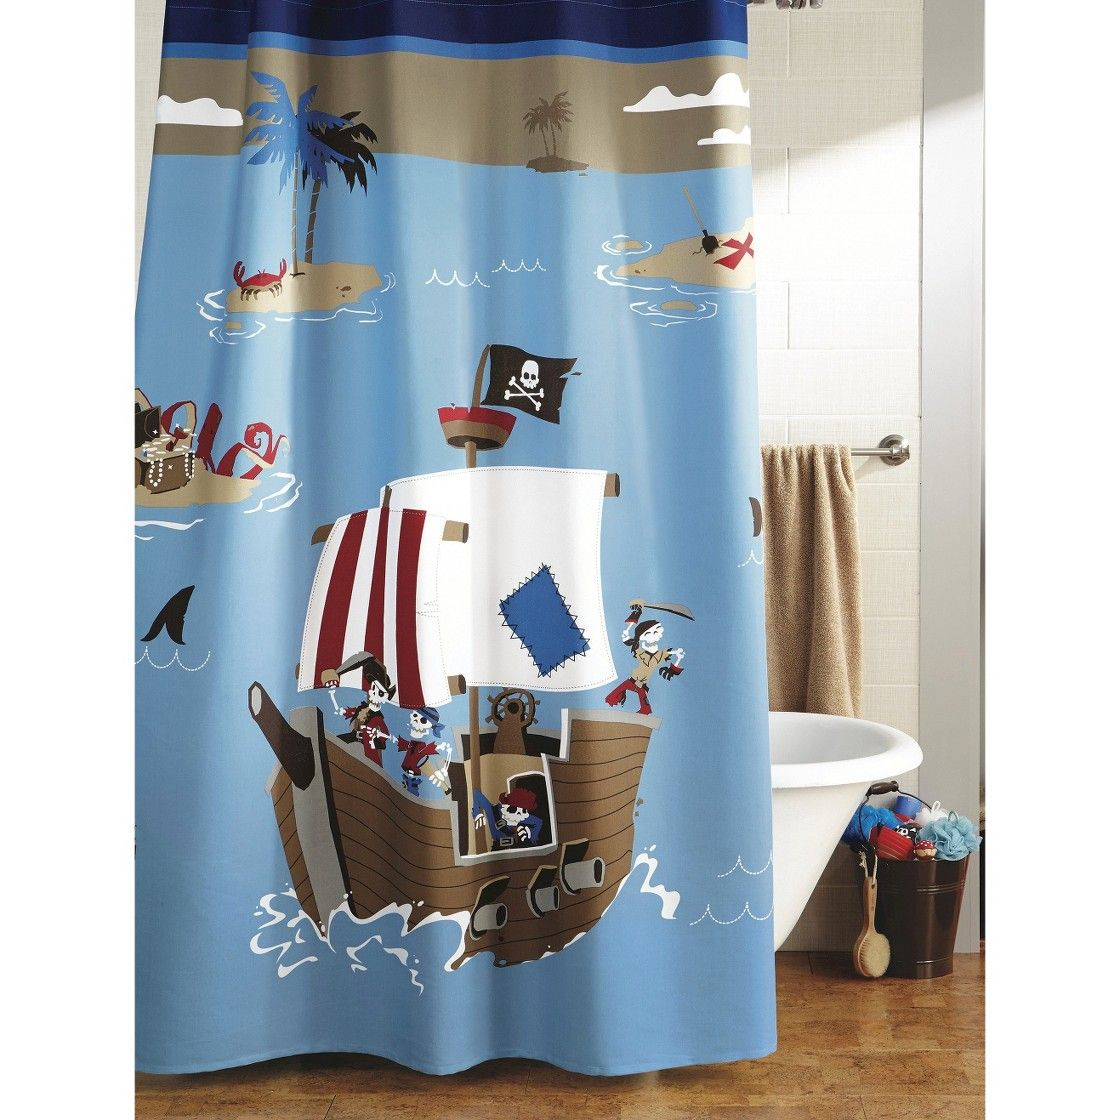 good Pirate Shower Curtain Part - 13: Circo  Pirate Shower Curtain - Blue